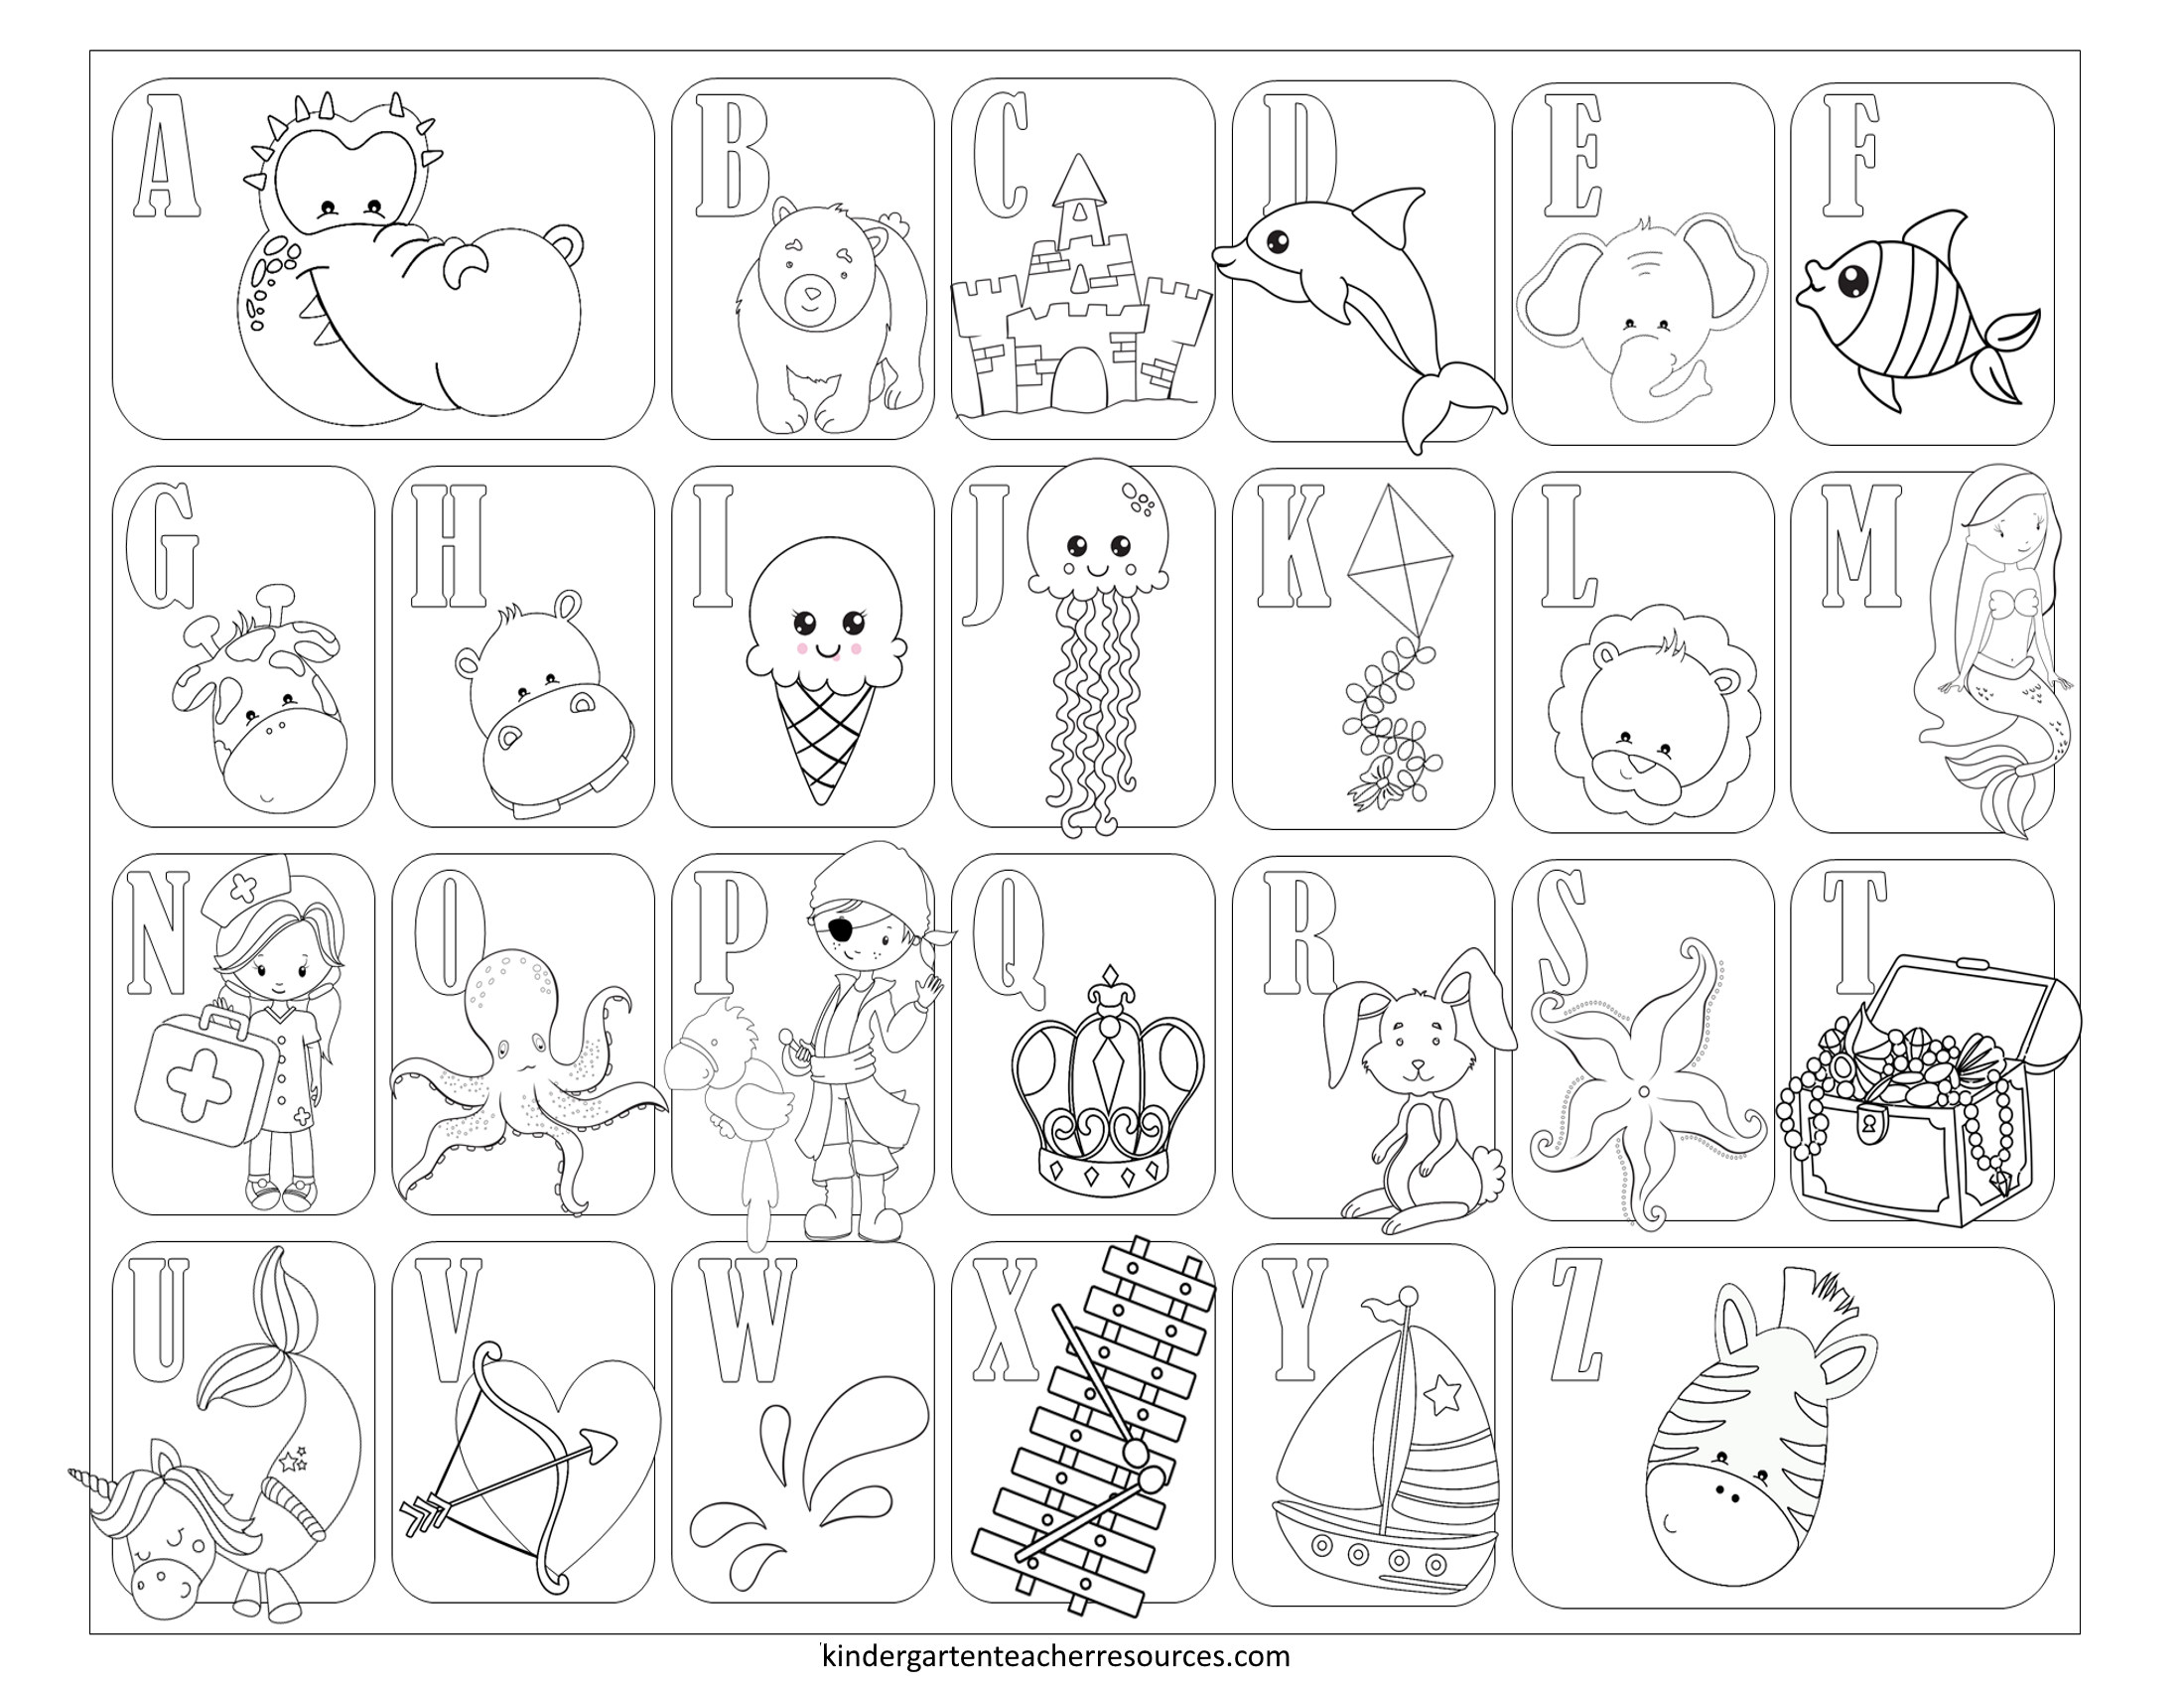 Alphabet Coloring Pages For Toddlers Printable Stunning in Alphabet Coloring Worksheets For Toddlers